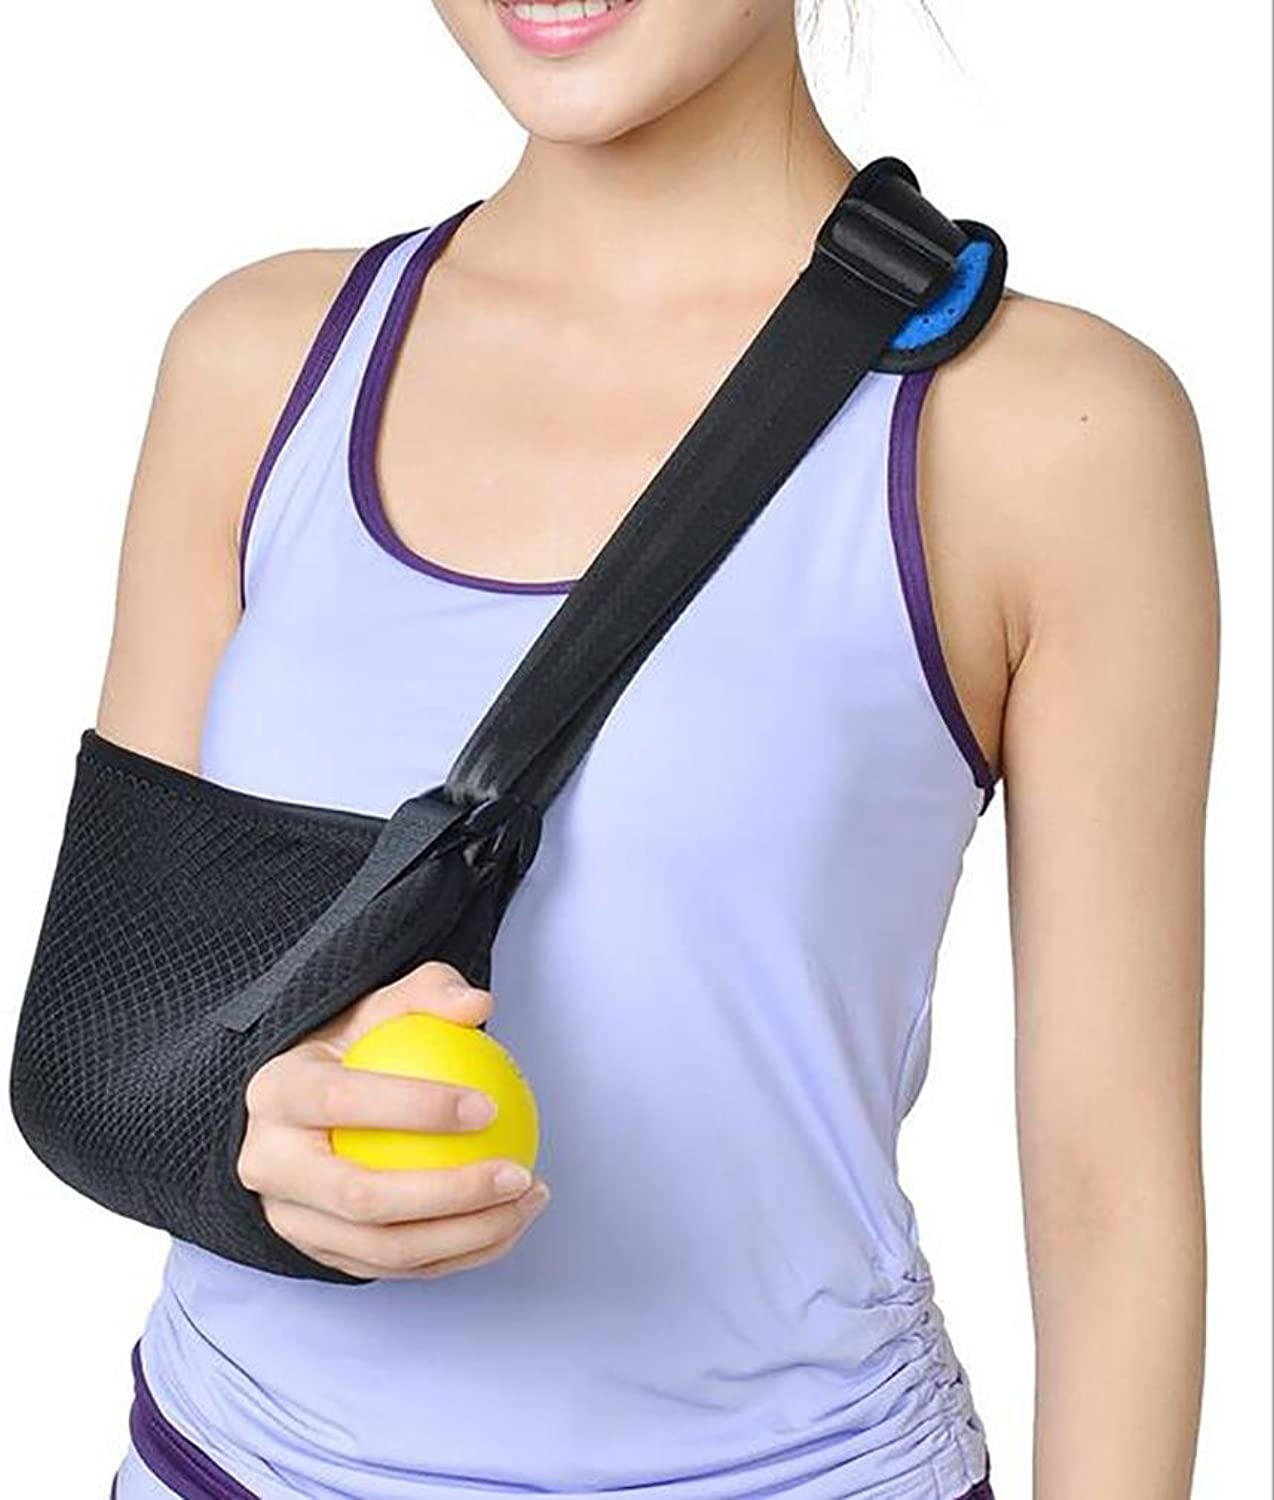 LPY-Arm Sling with Thumb Support Dislocated Shoulder for Broken Arm Immobilizer Wrist Elbow Support Ergonomic, Lightweight, Breathable Mesh, Split StrapSuits both Men & Women, (Adult)